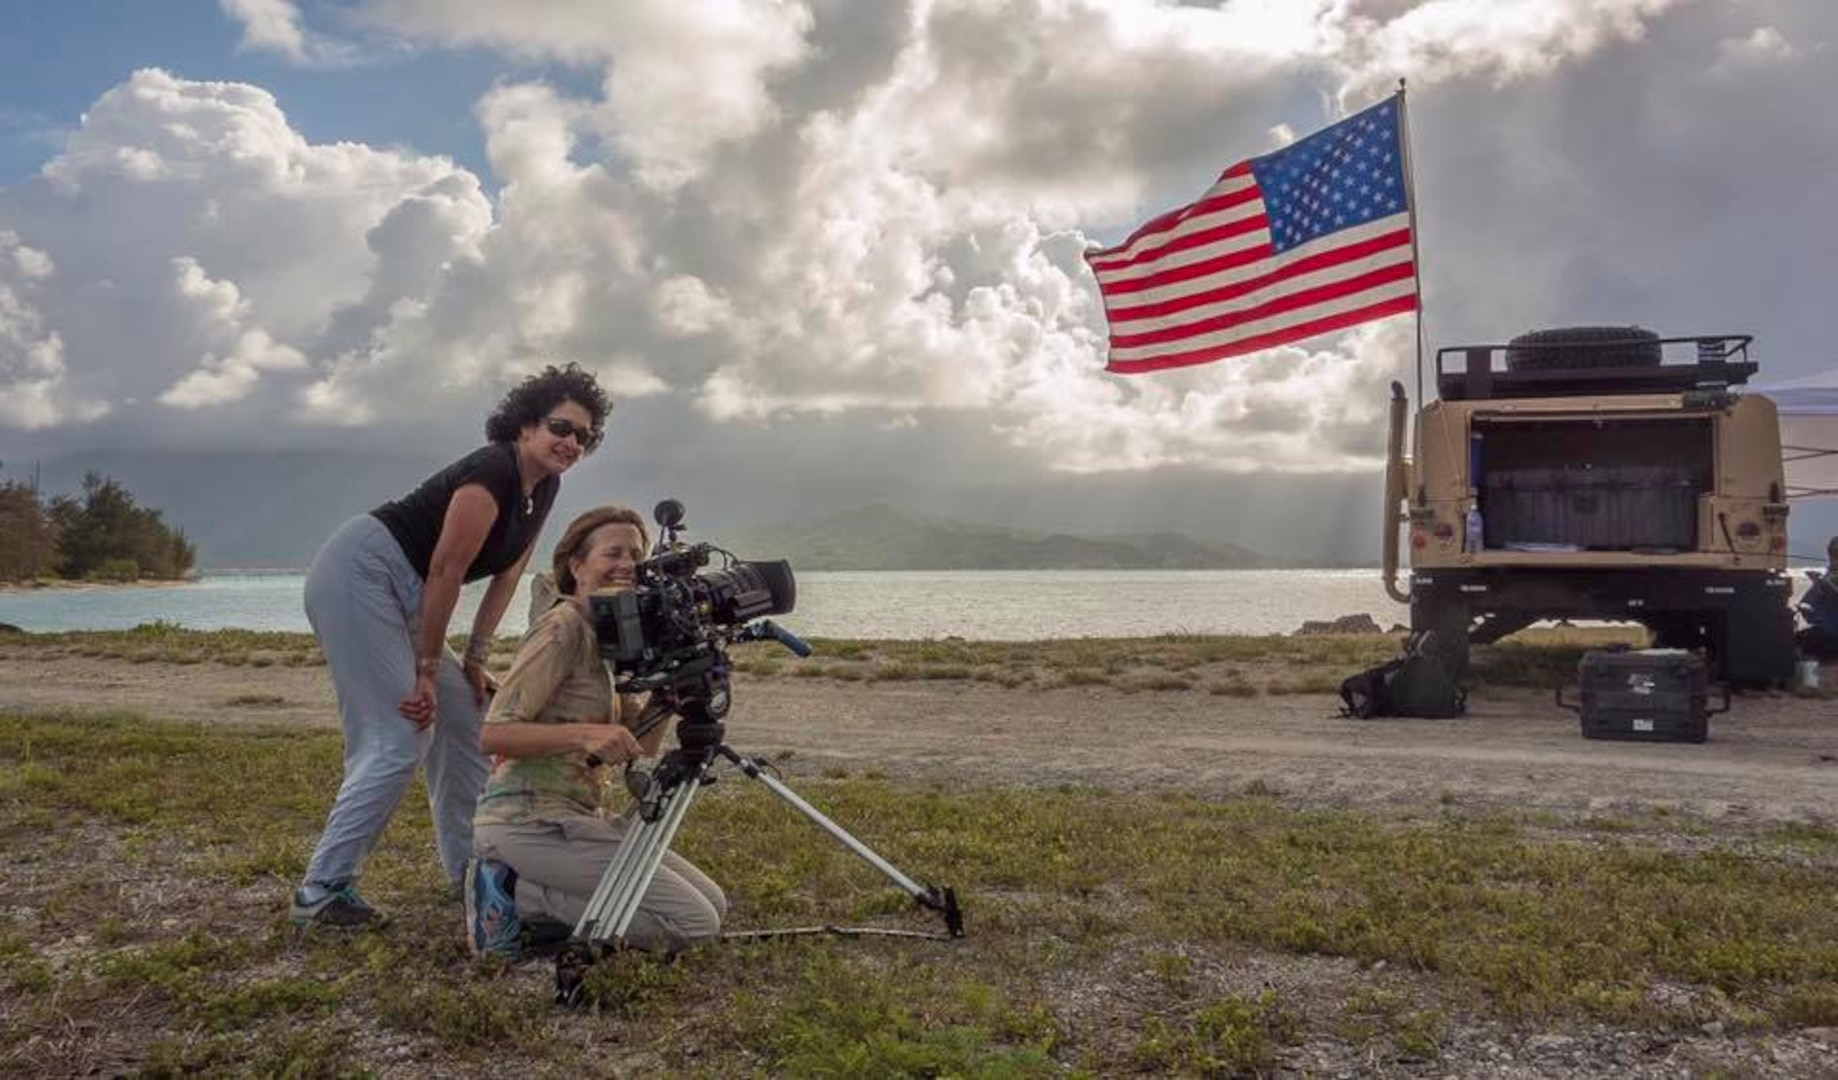 Nutan Chada (left) poses for a photo with a cameraperson after a video shoot in Kane'ohe Bay, Hawaii.